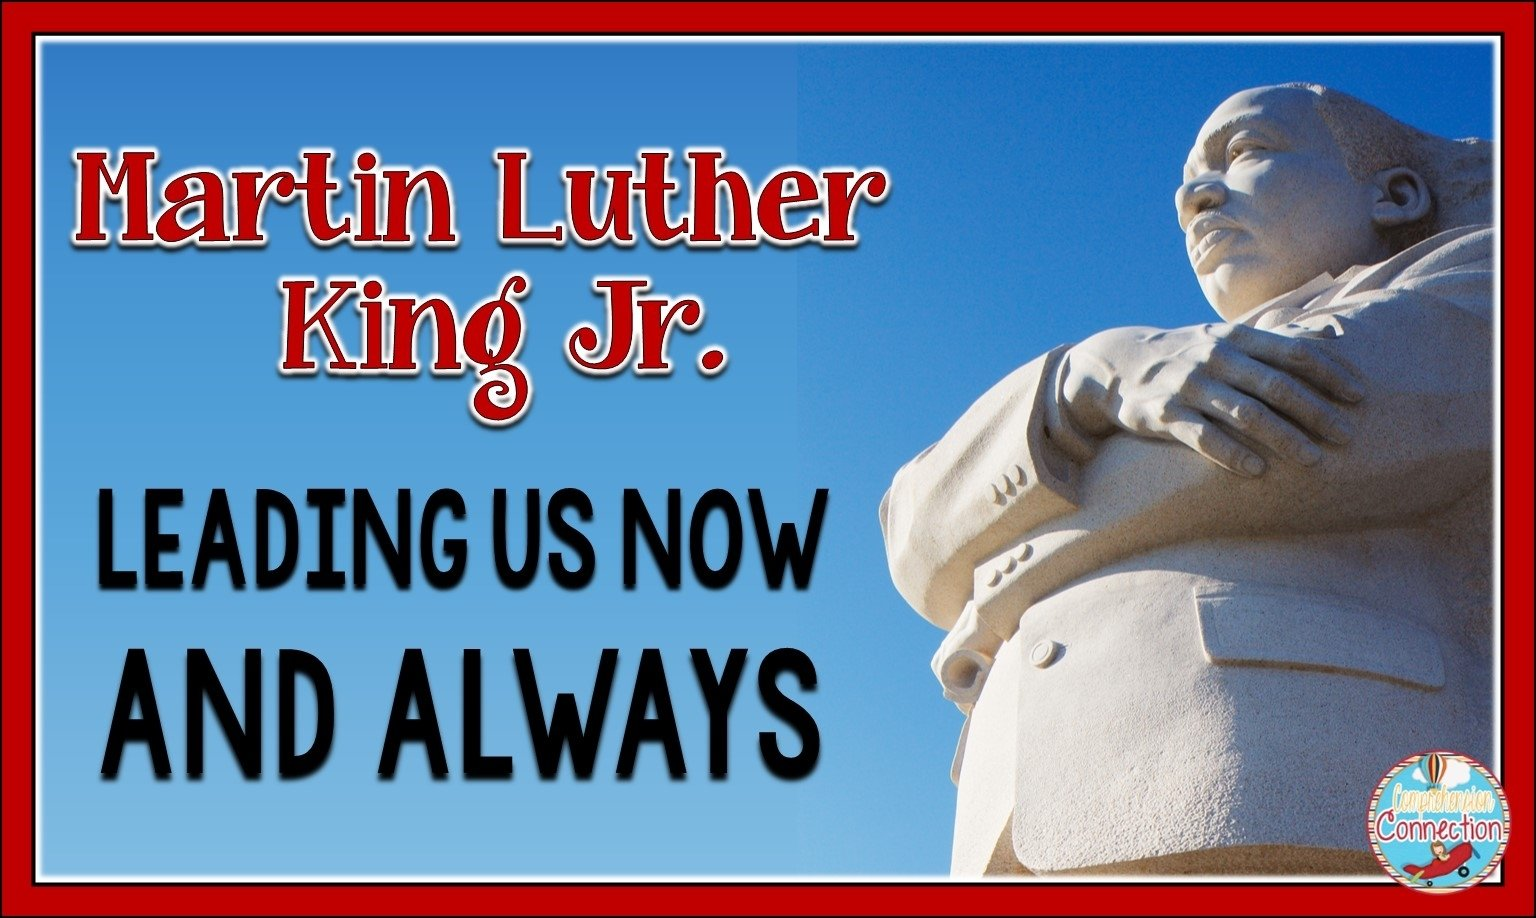 10 Spectacular Martin Luther King Jr Ideas martin luther king jr leading us now and always comprehension 2020